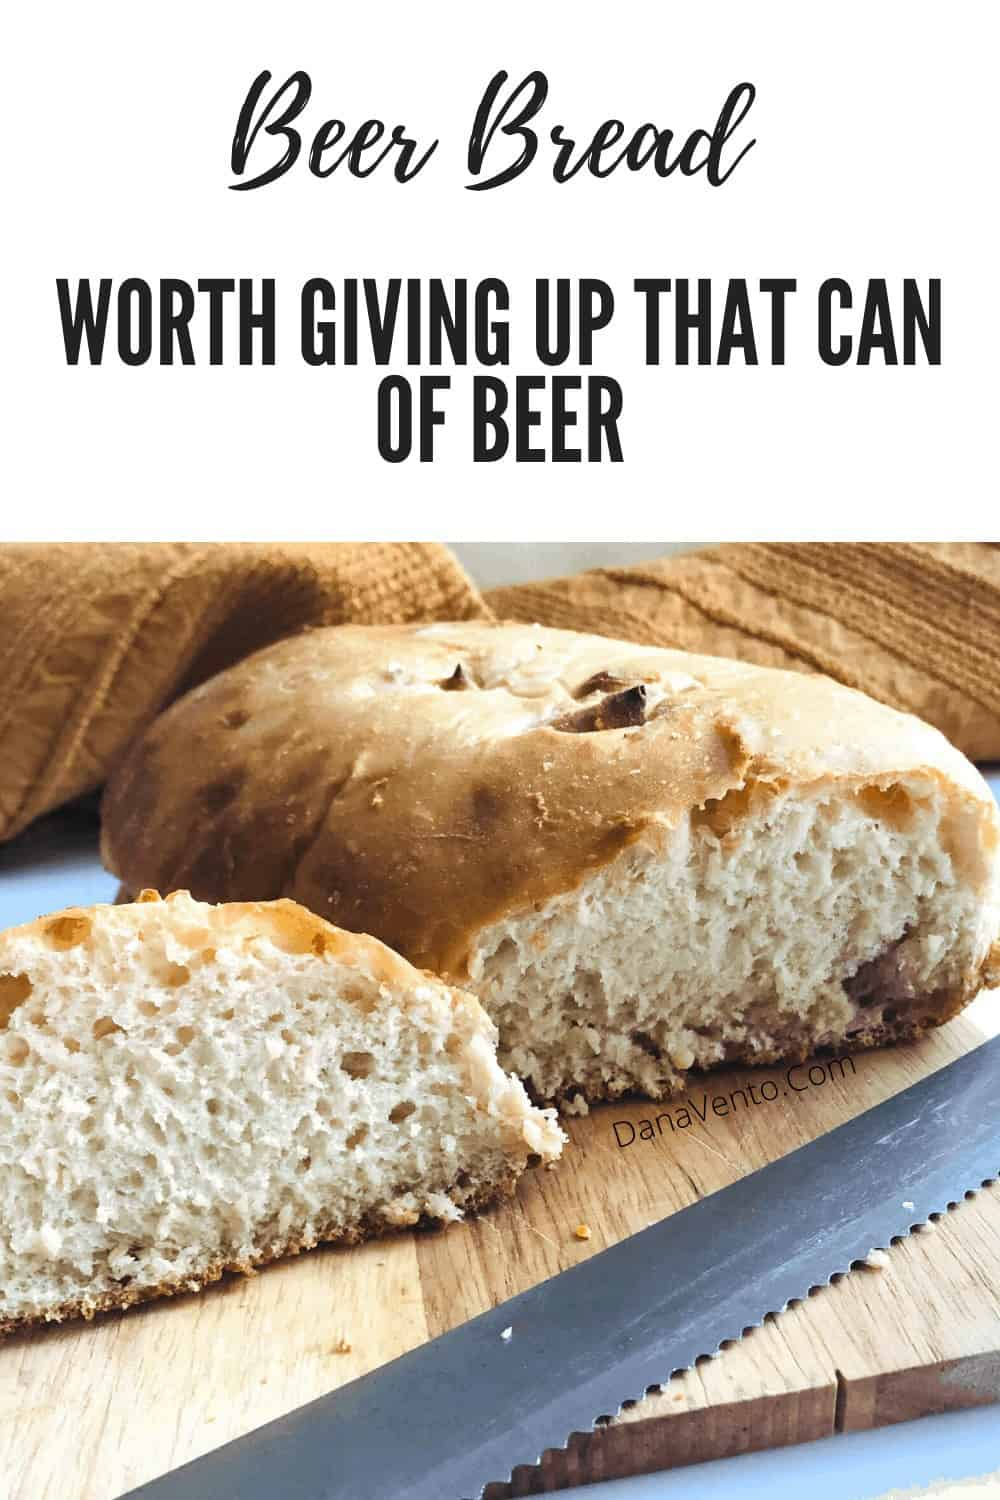 Beer Bread Worth Giving Up That Can Of Beer